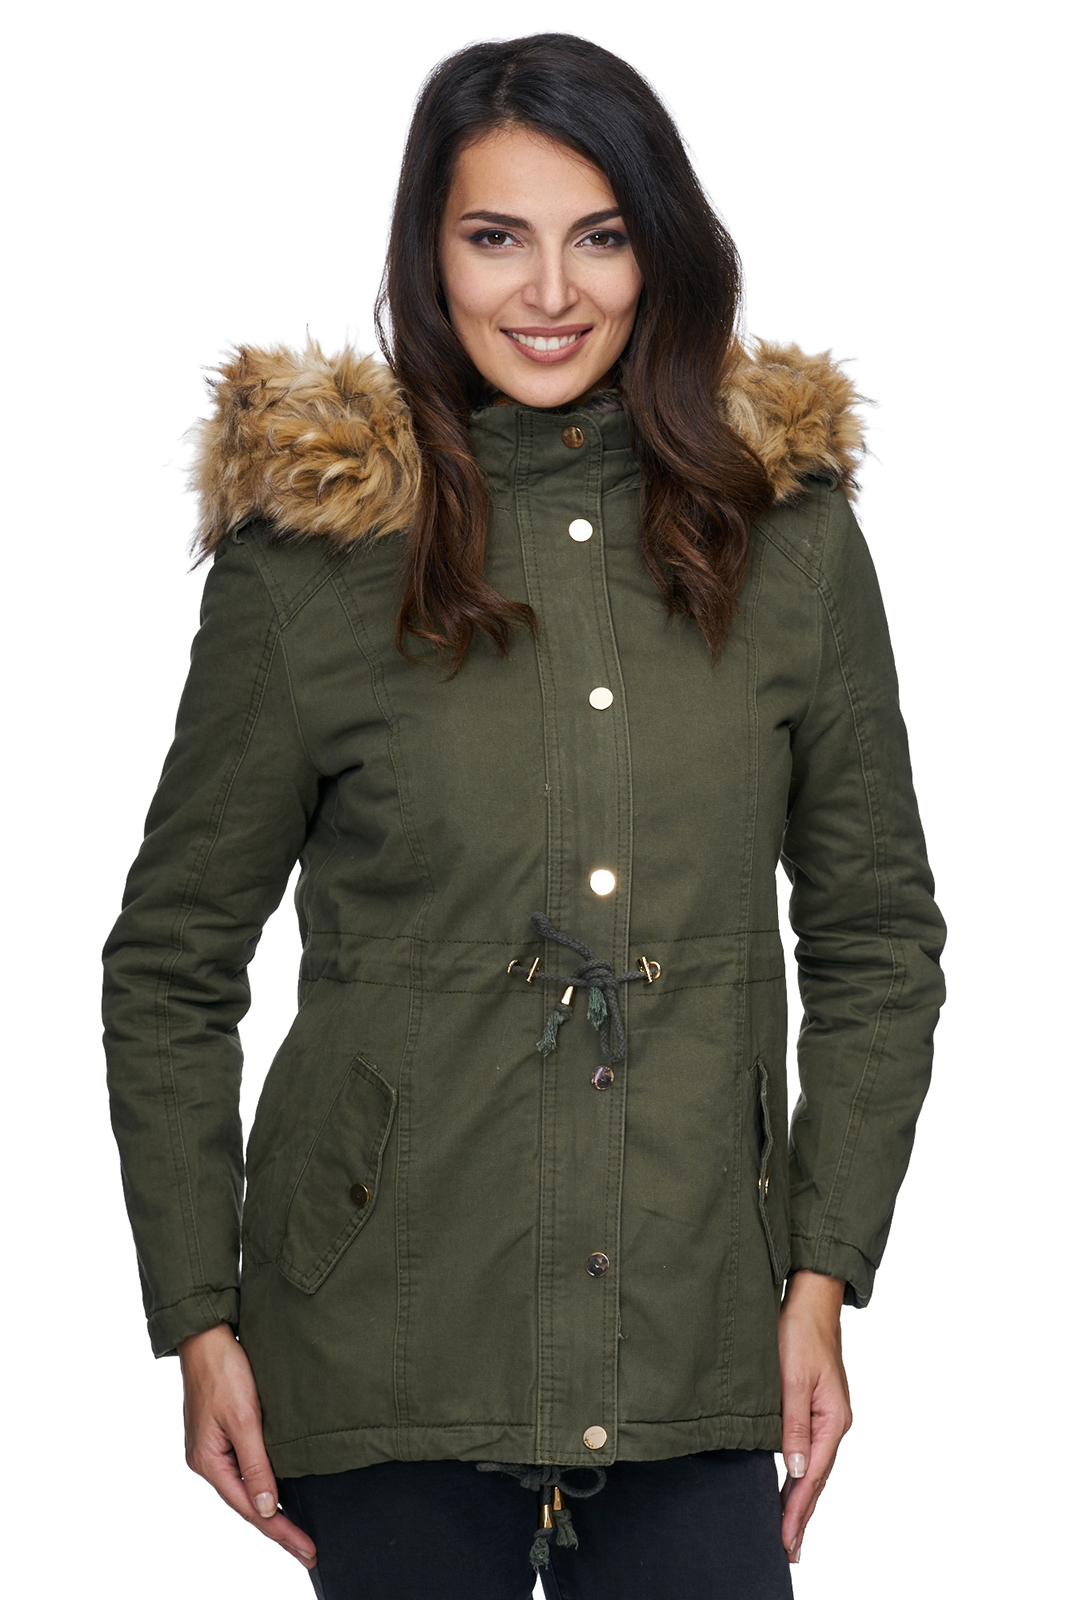 ock jacke damen damen blogger kunstleder rmel mantel parka jacke damen winter jacke camouflage. Black Bedroom Furniture Sets. Home Design Ideas